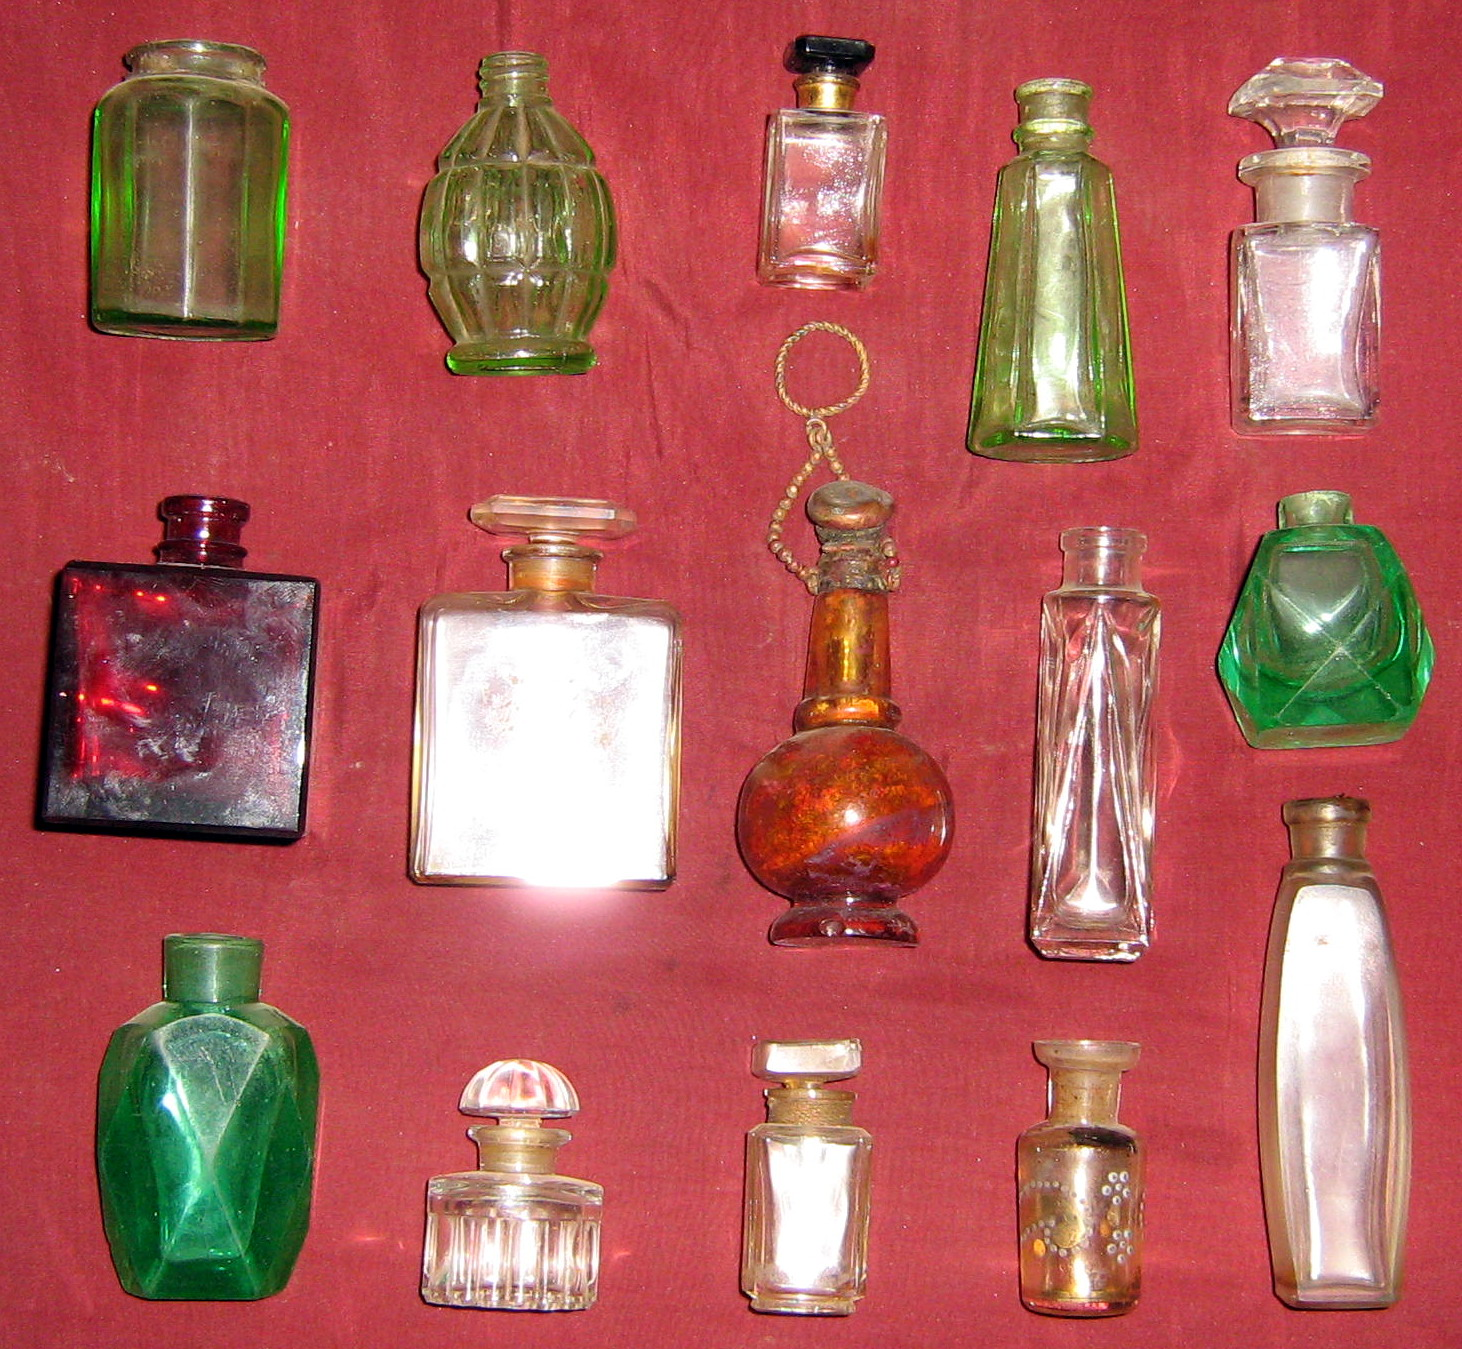 Various Types of Perfume Bottles in Glass